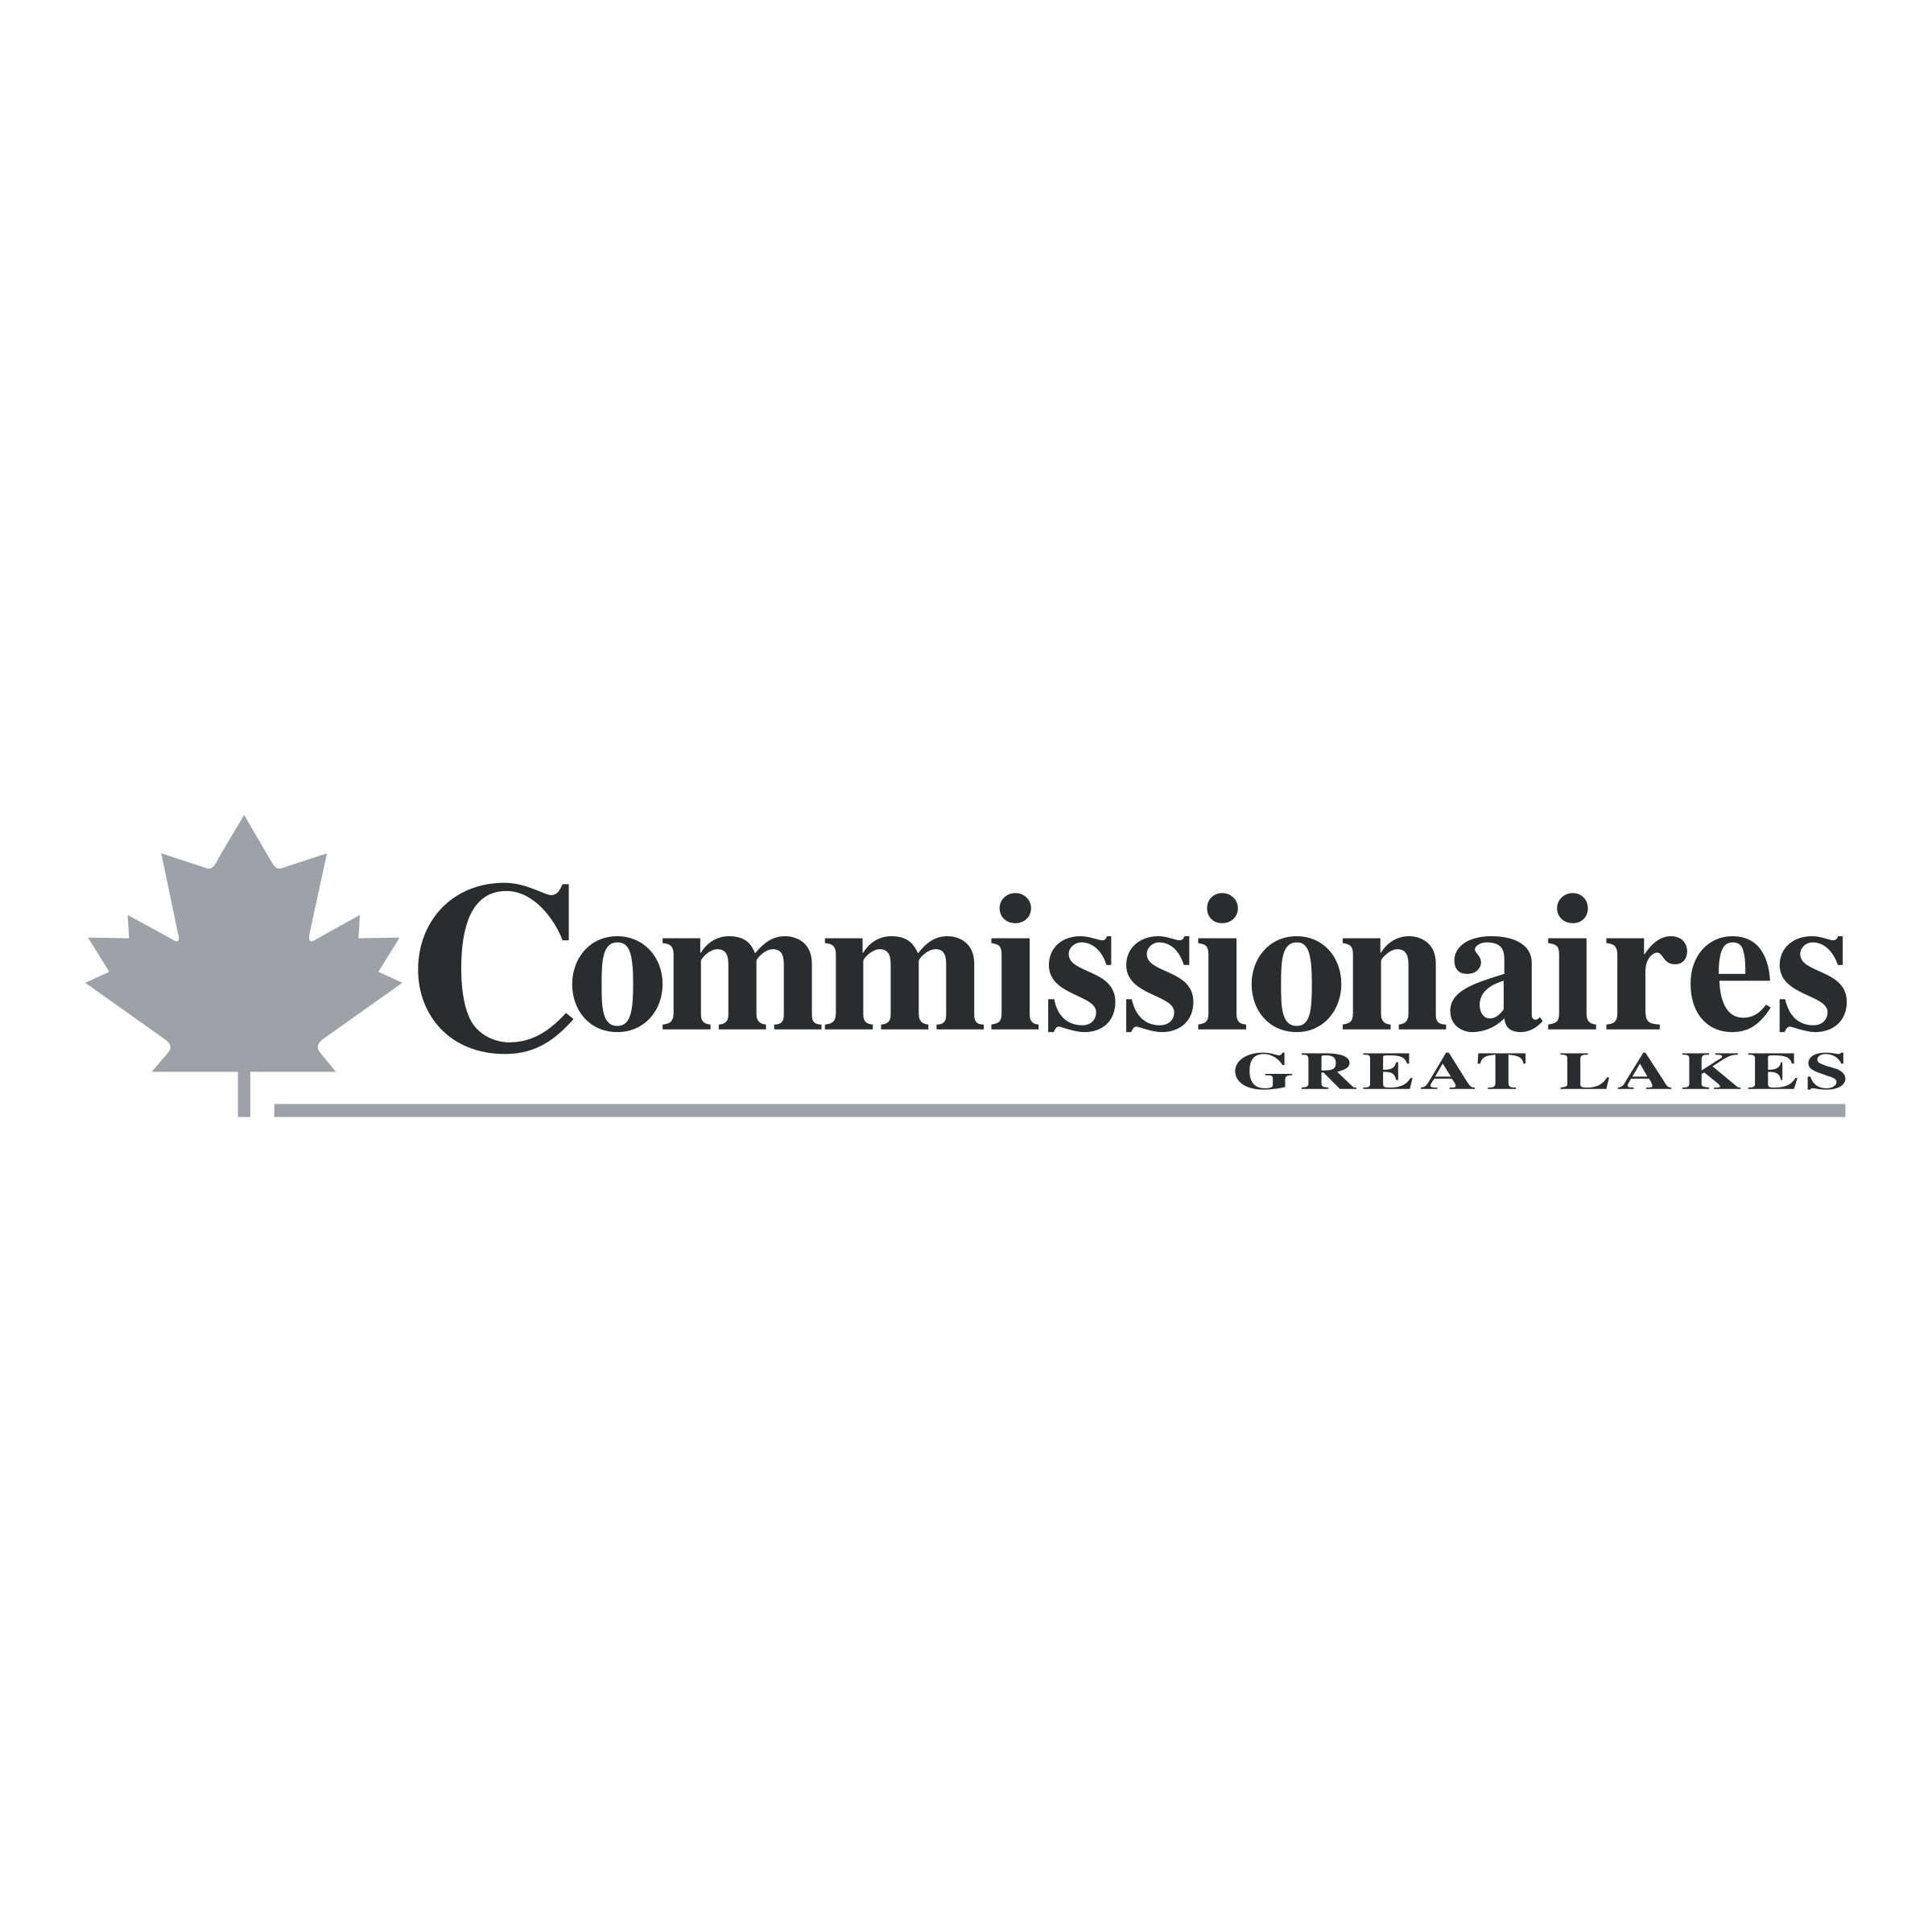 2400x2400 Commissionaires Great Lakes Logo Png Transparent Amp Svg Vector